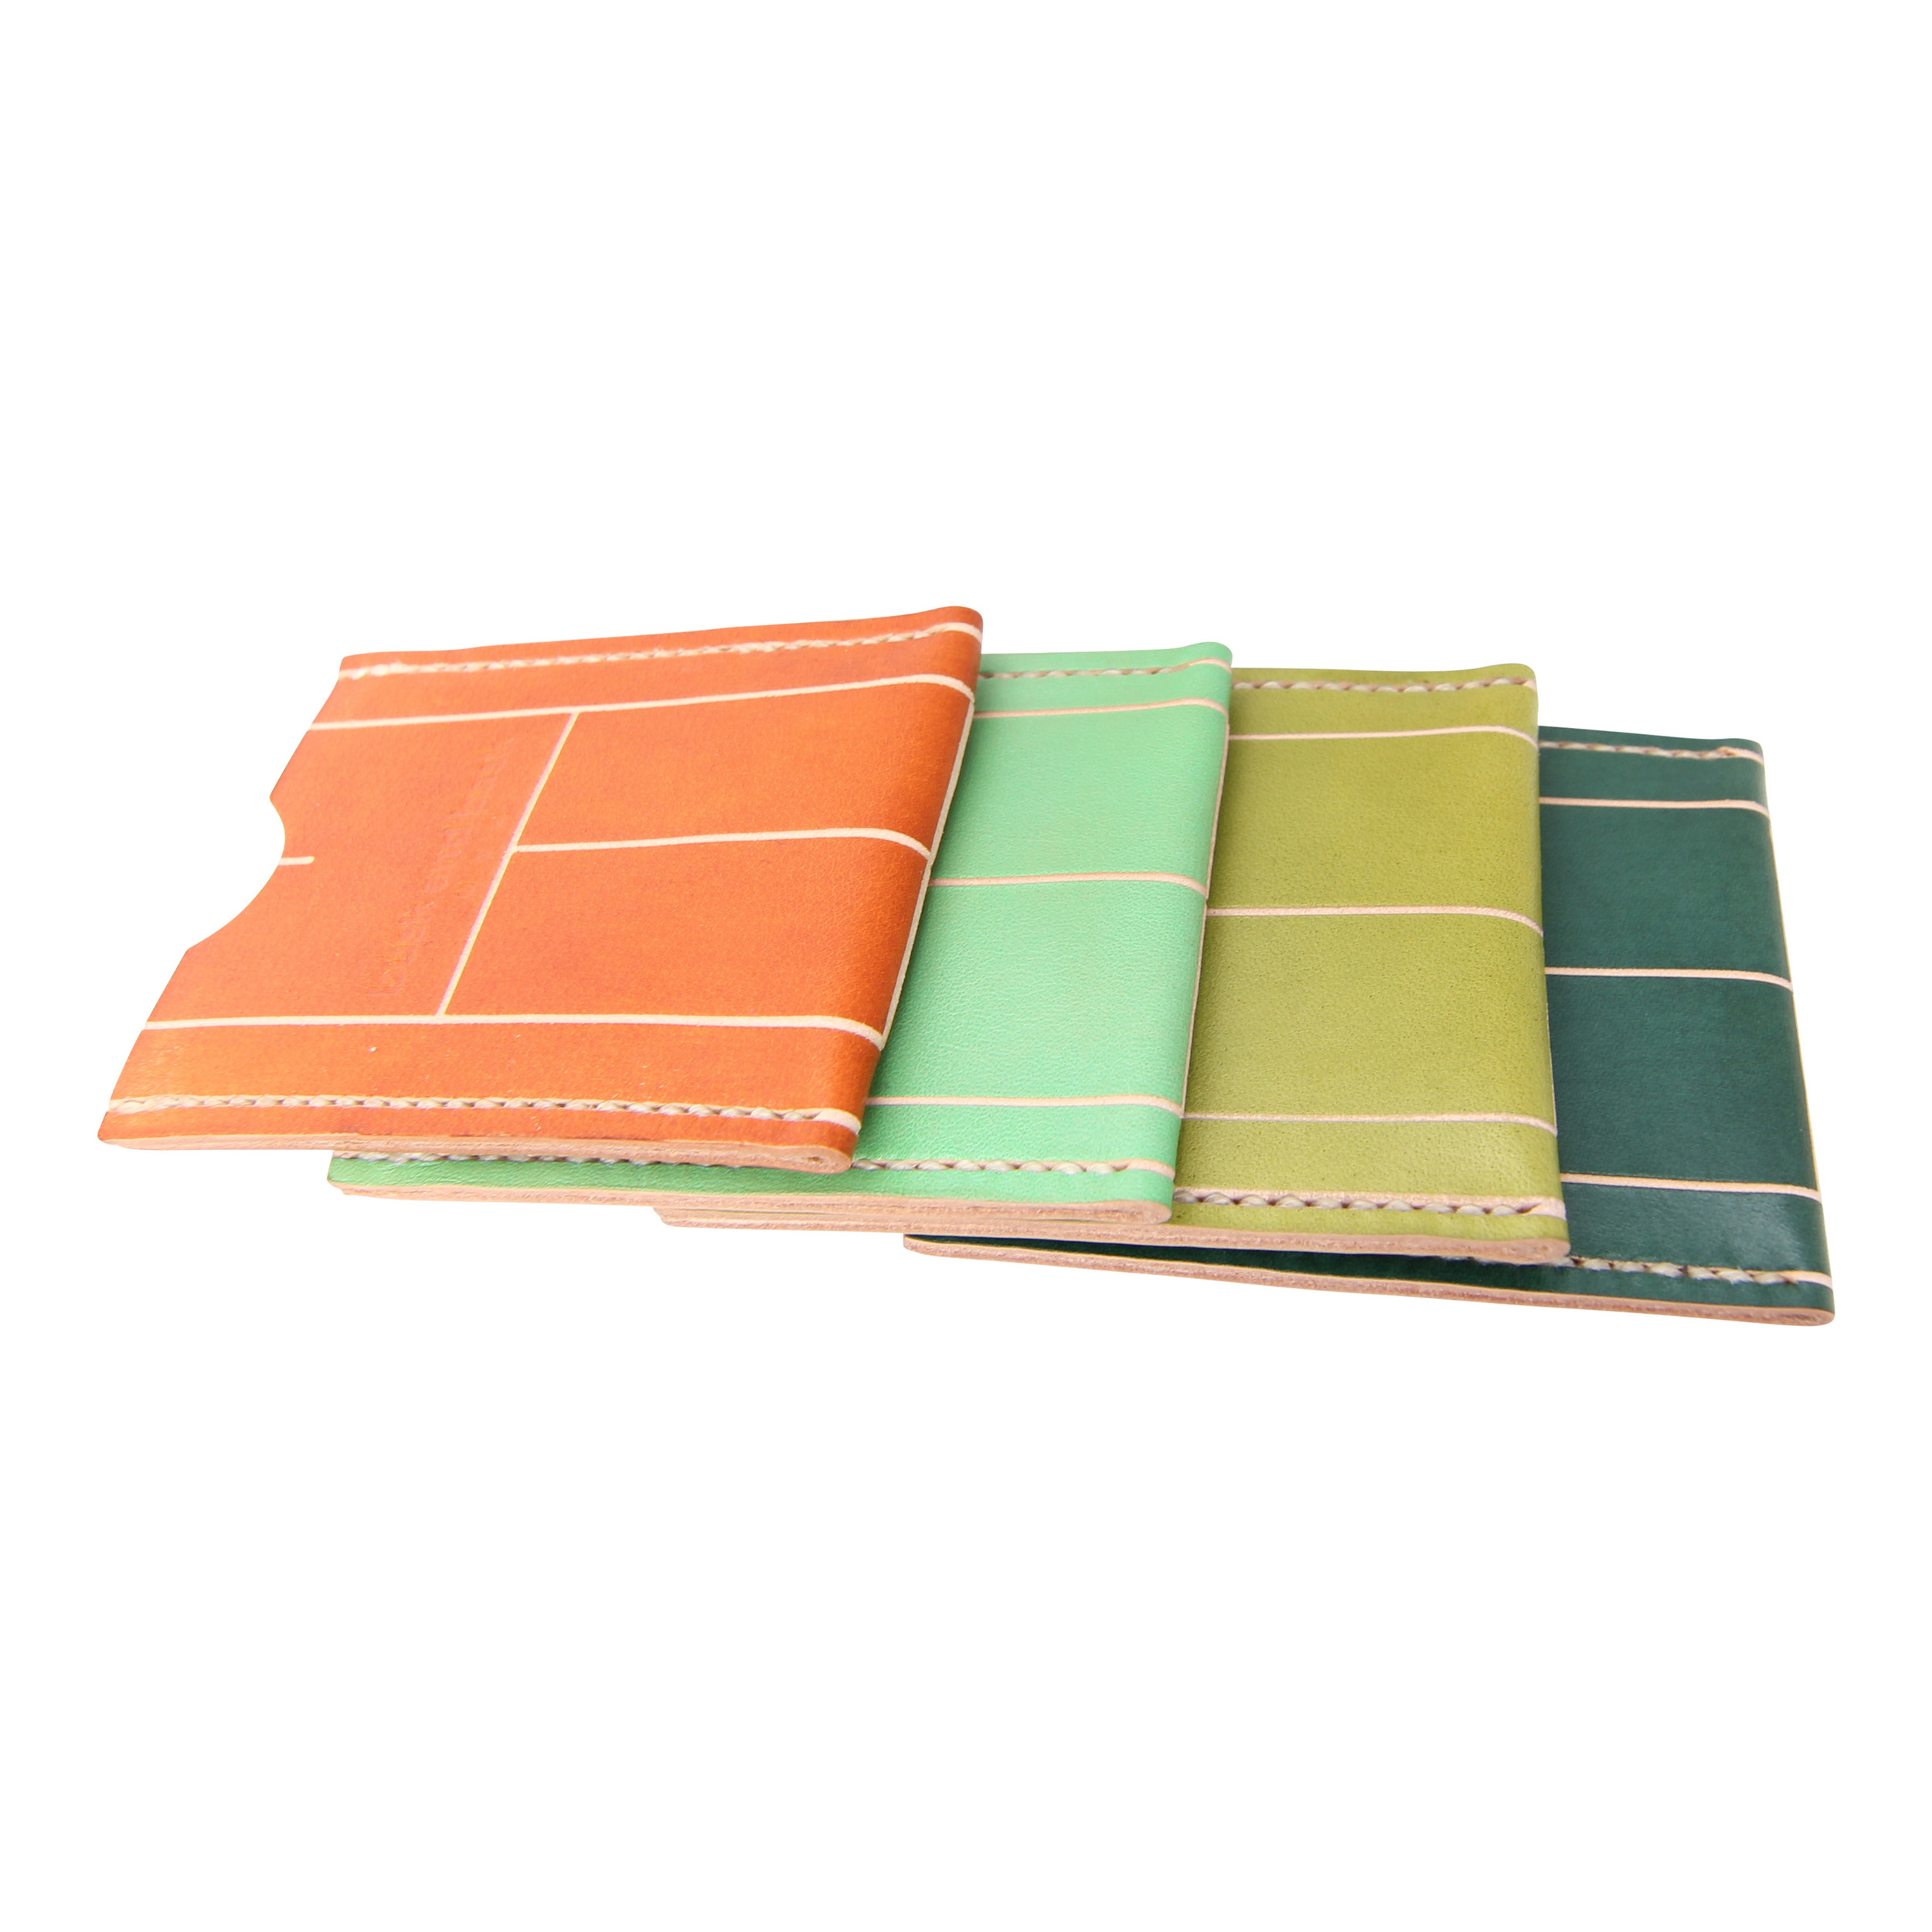 tennis-leather-slim-wallets.jpg